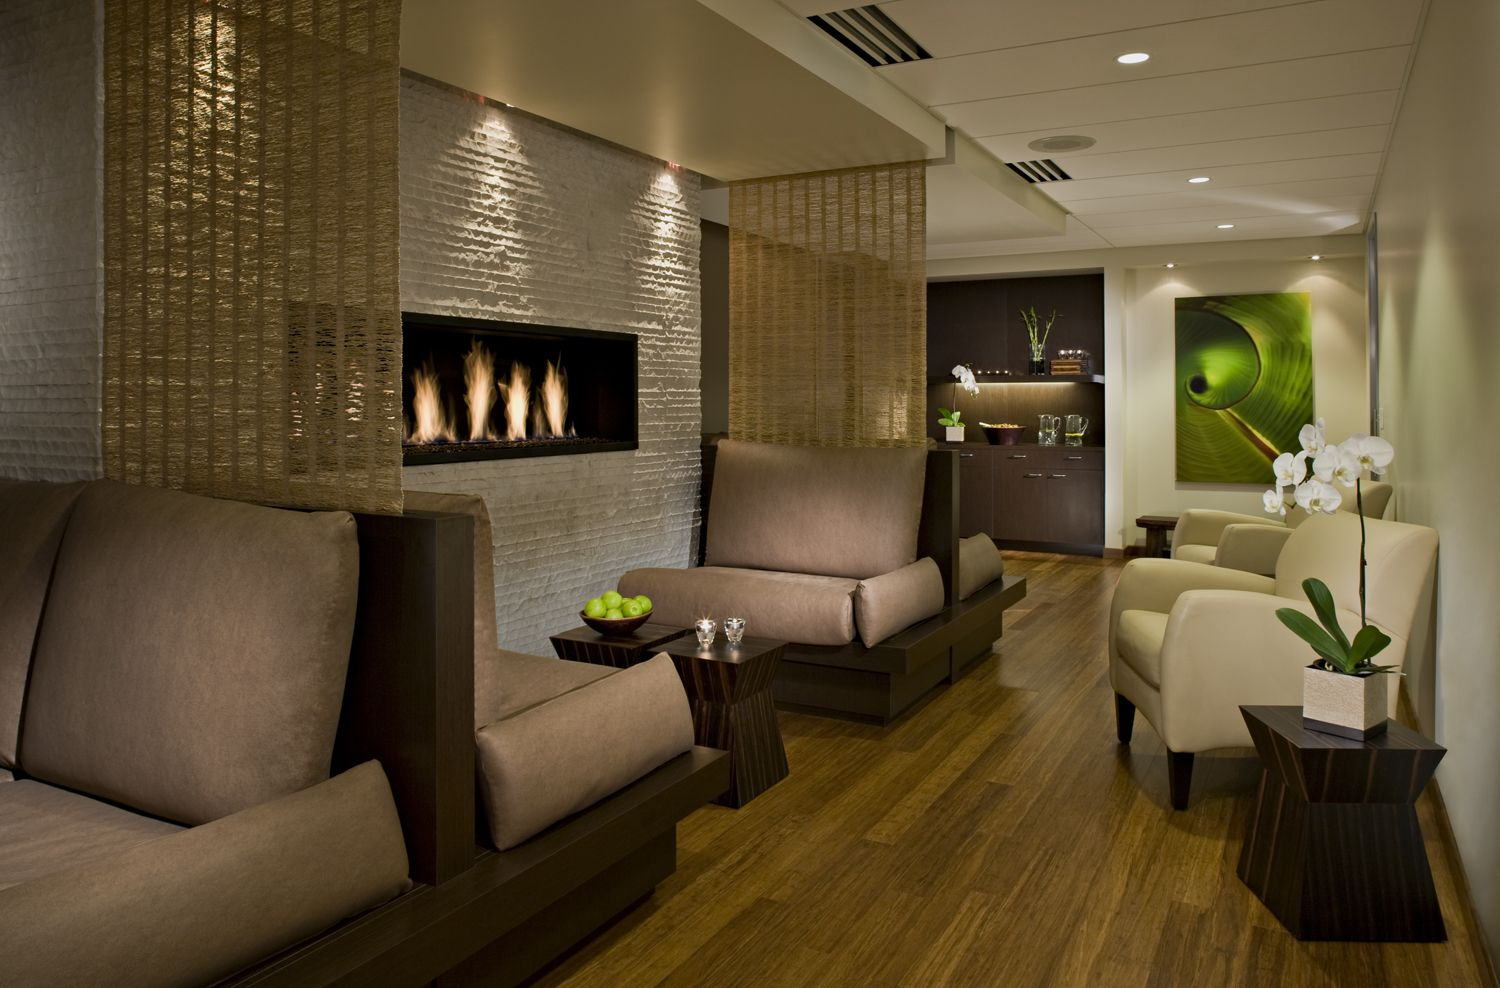 spa decor  Hospitality Design Vida Spa by HOK  Home